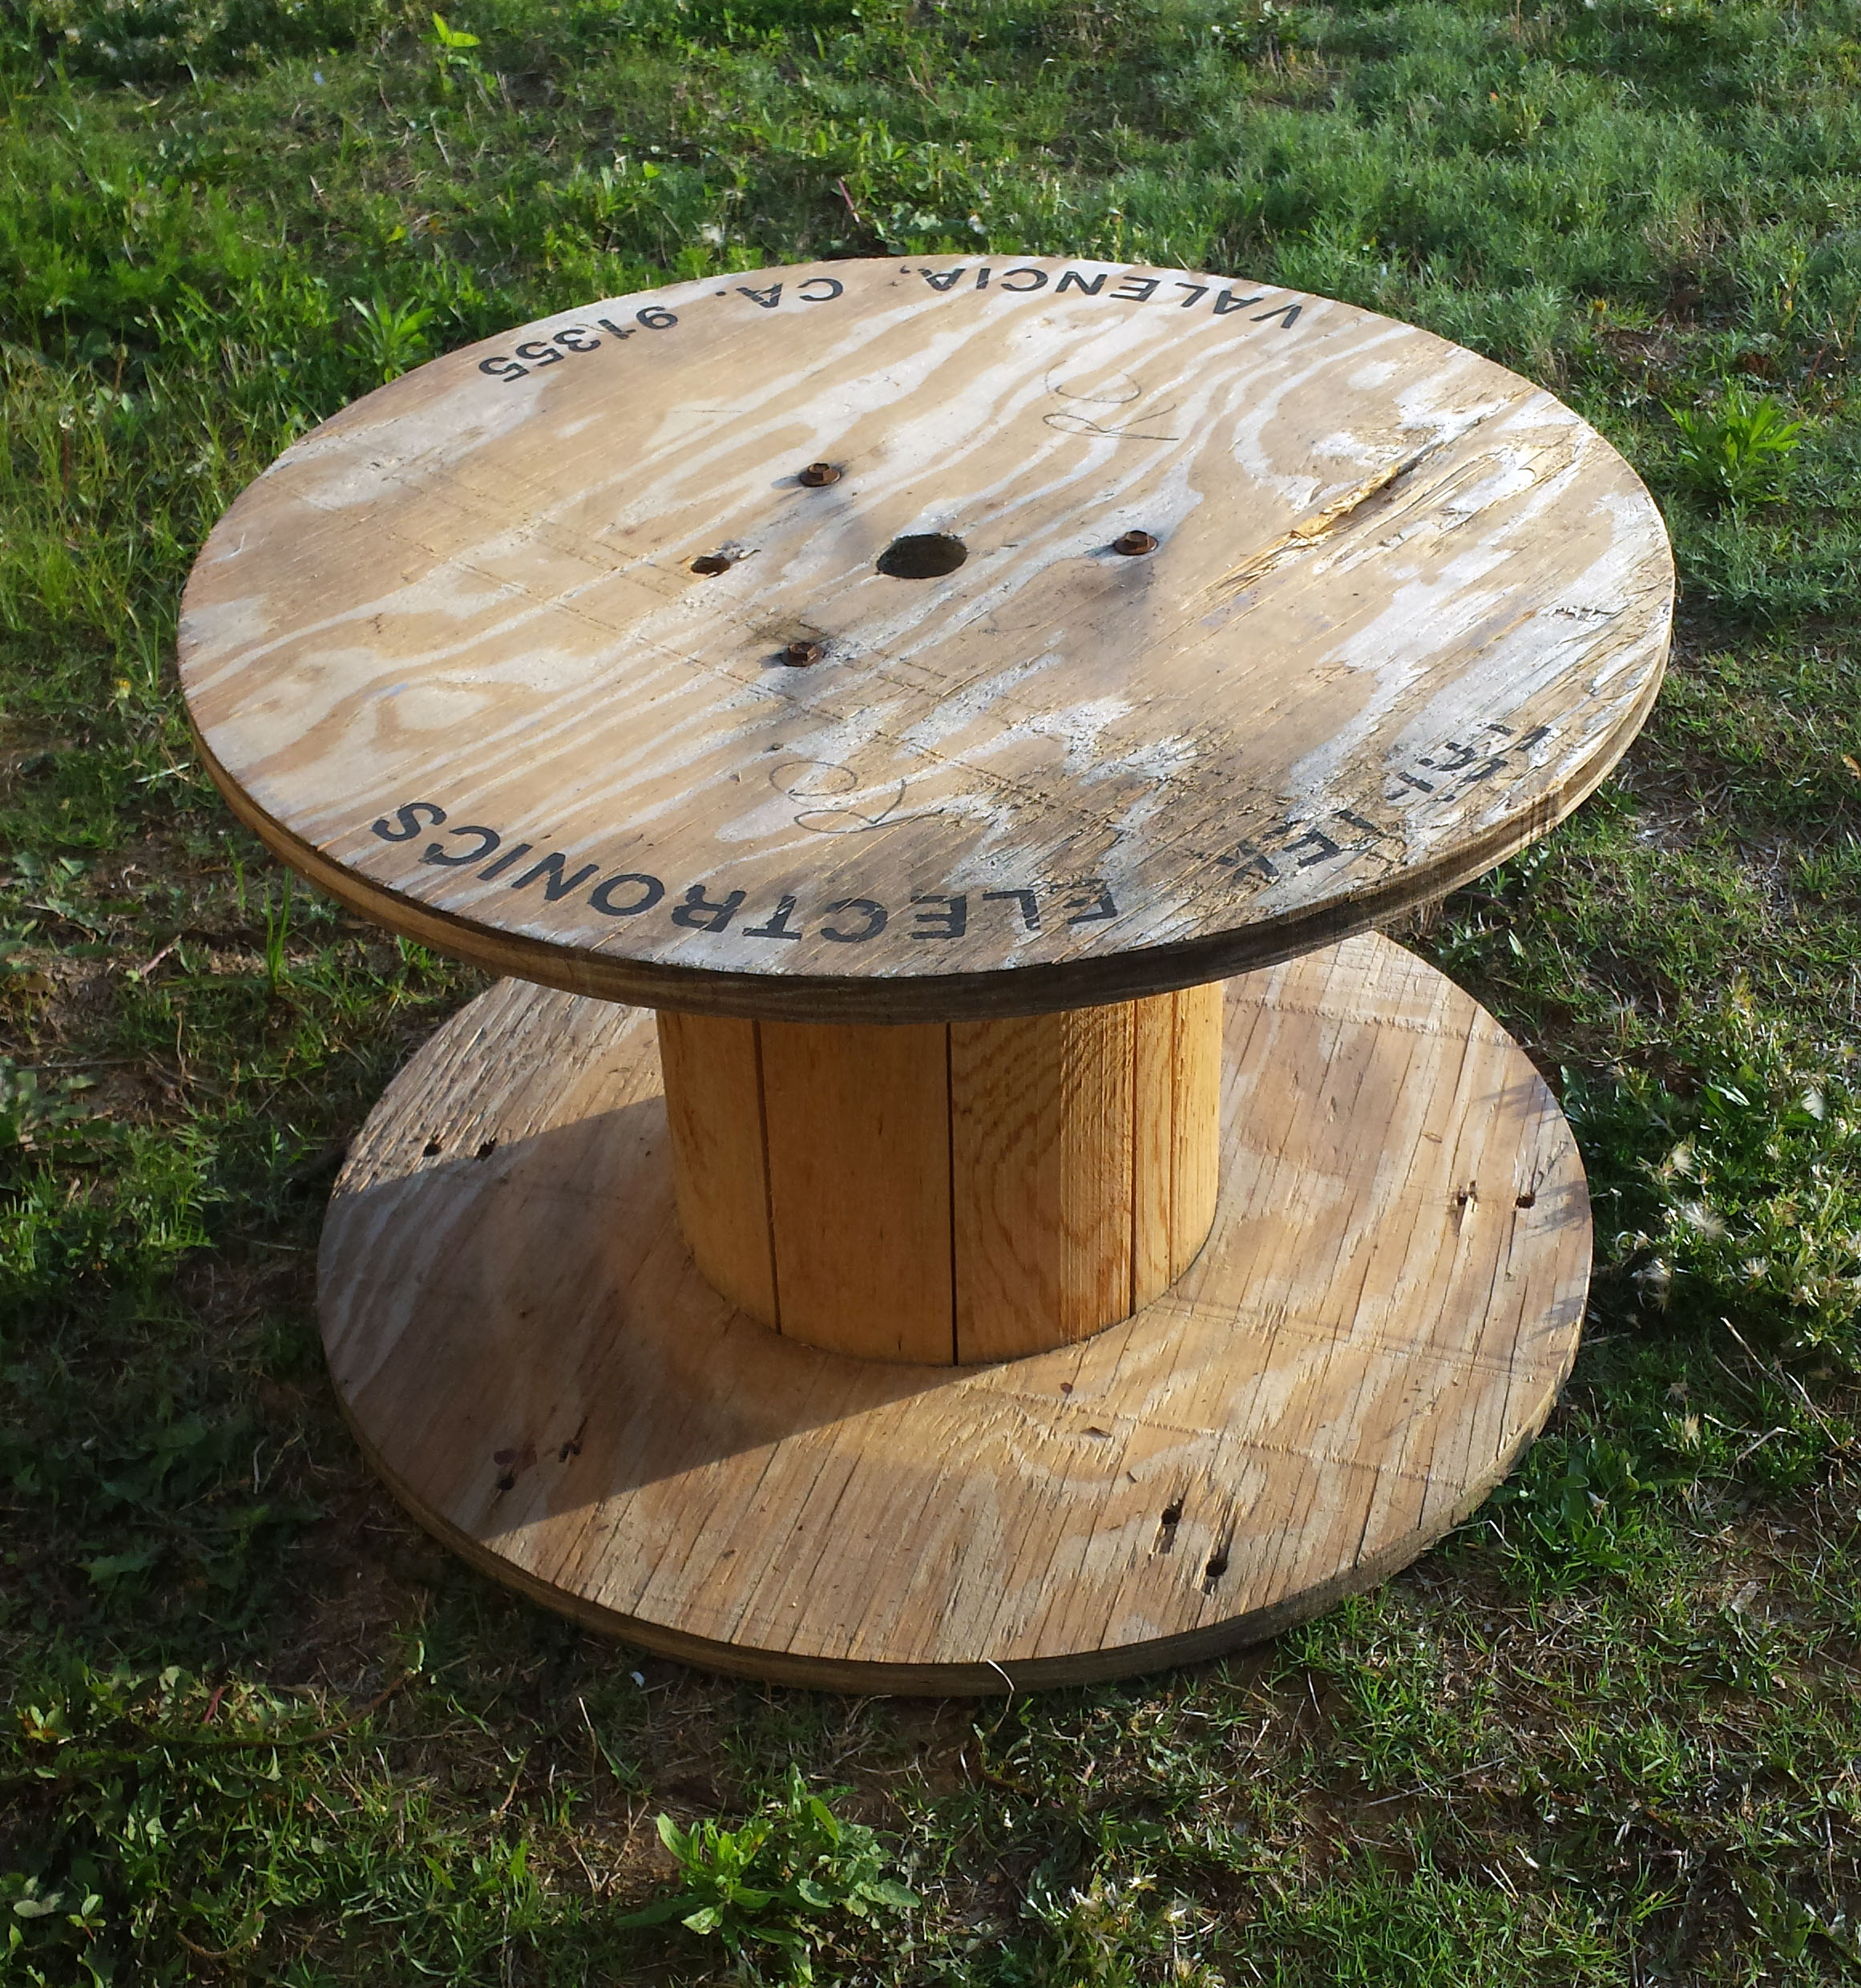 Diy wooden spool tray the hamby home for Small wire spool ideas